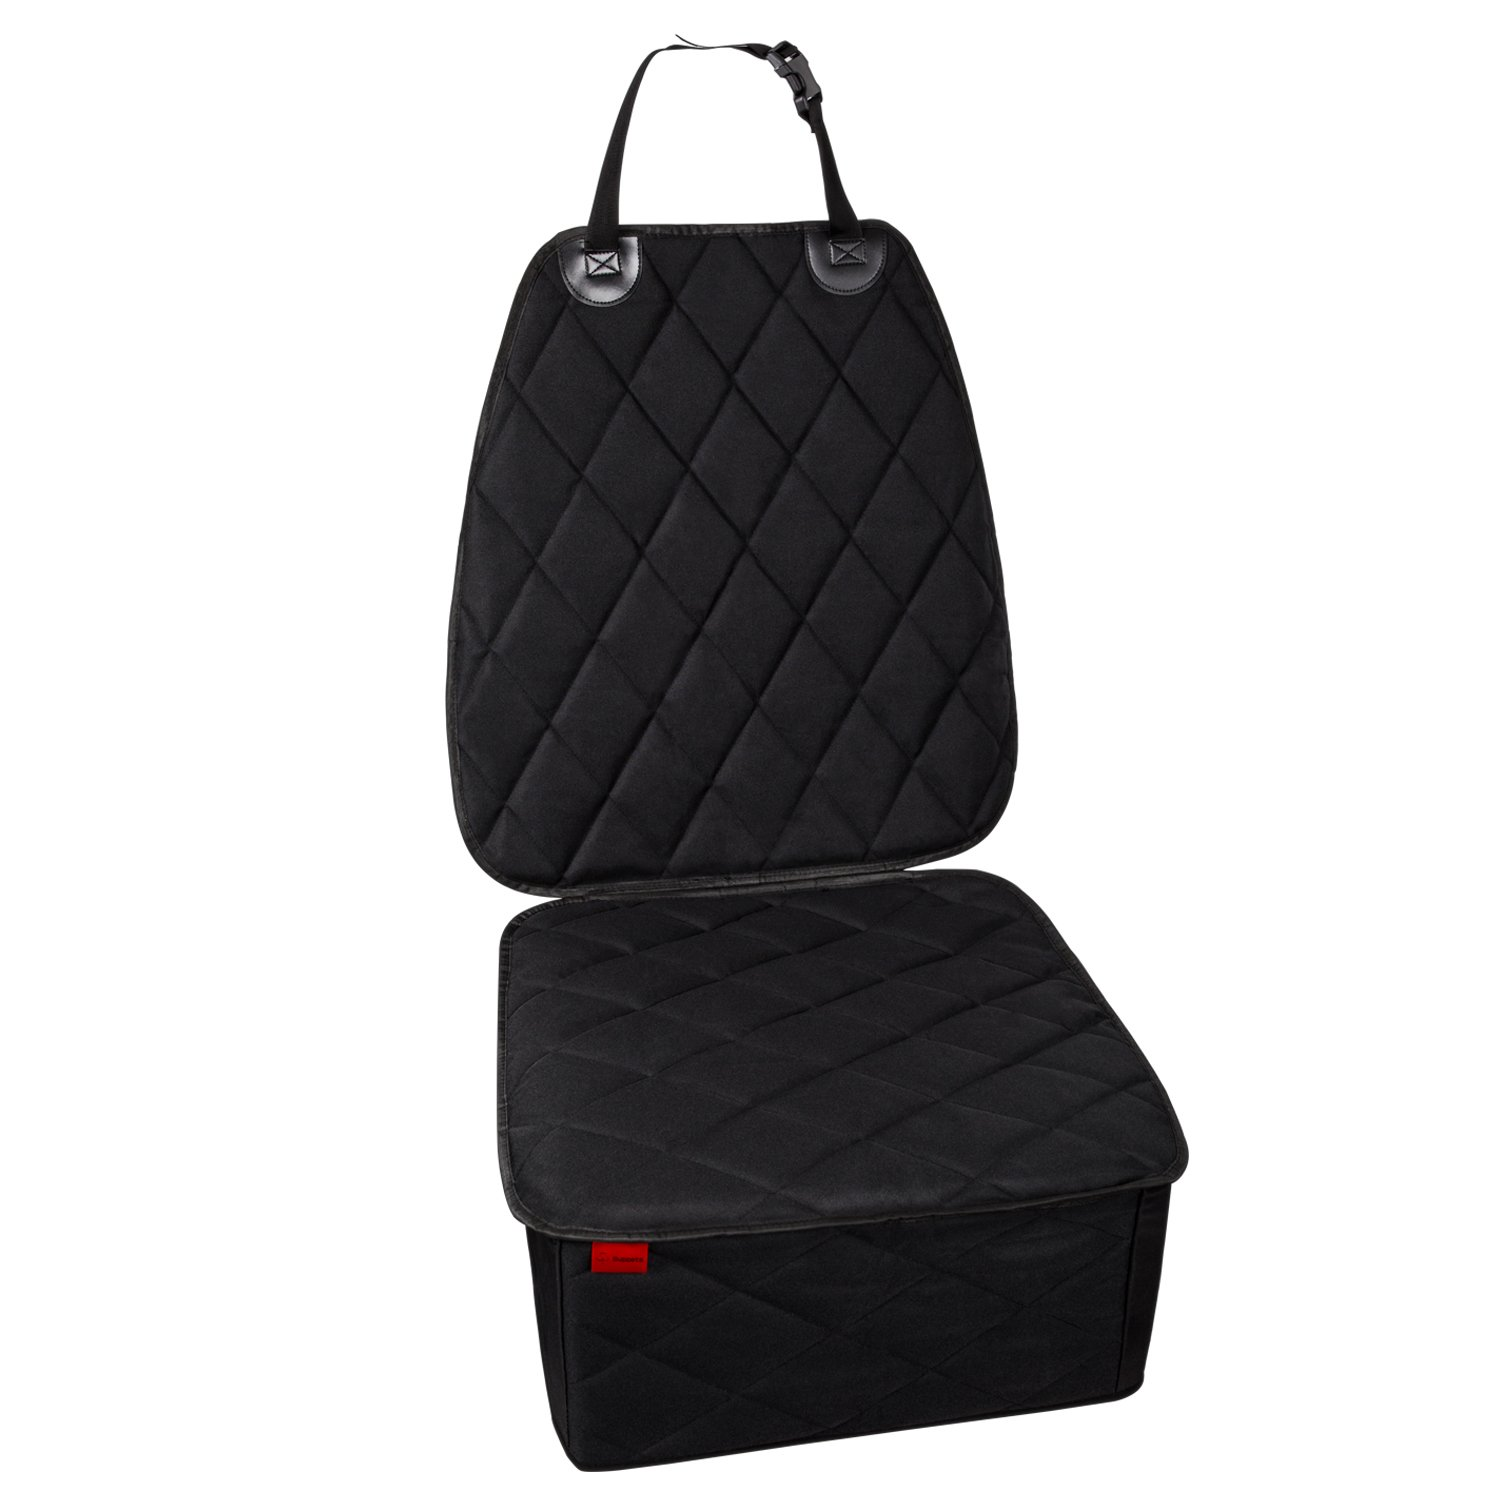 Pet Dog Car Front Seat Cover Protector, Waterproof Nonslip Front Seat Covers for Dog, Dog Seat Covers for Cars, Passenger Seat Cover, Anti Scratch Blanket Mat for Truck Cars SUV Seat, Machine Washable